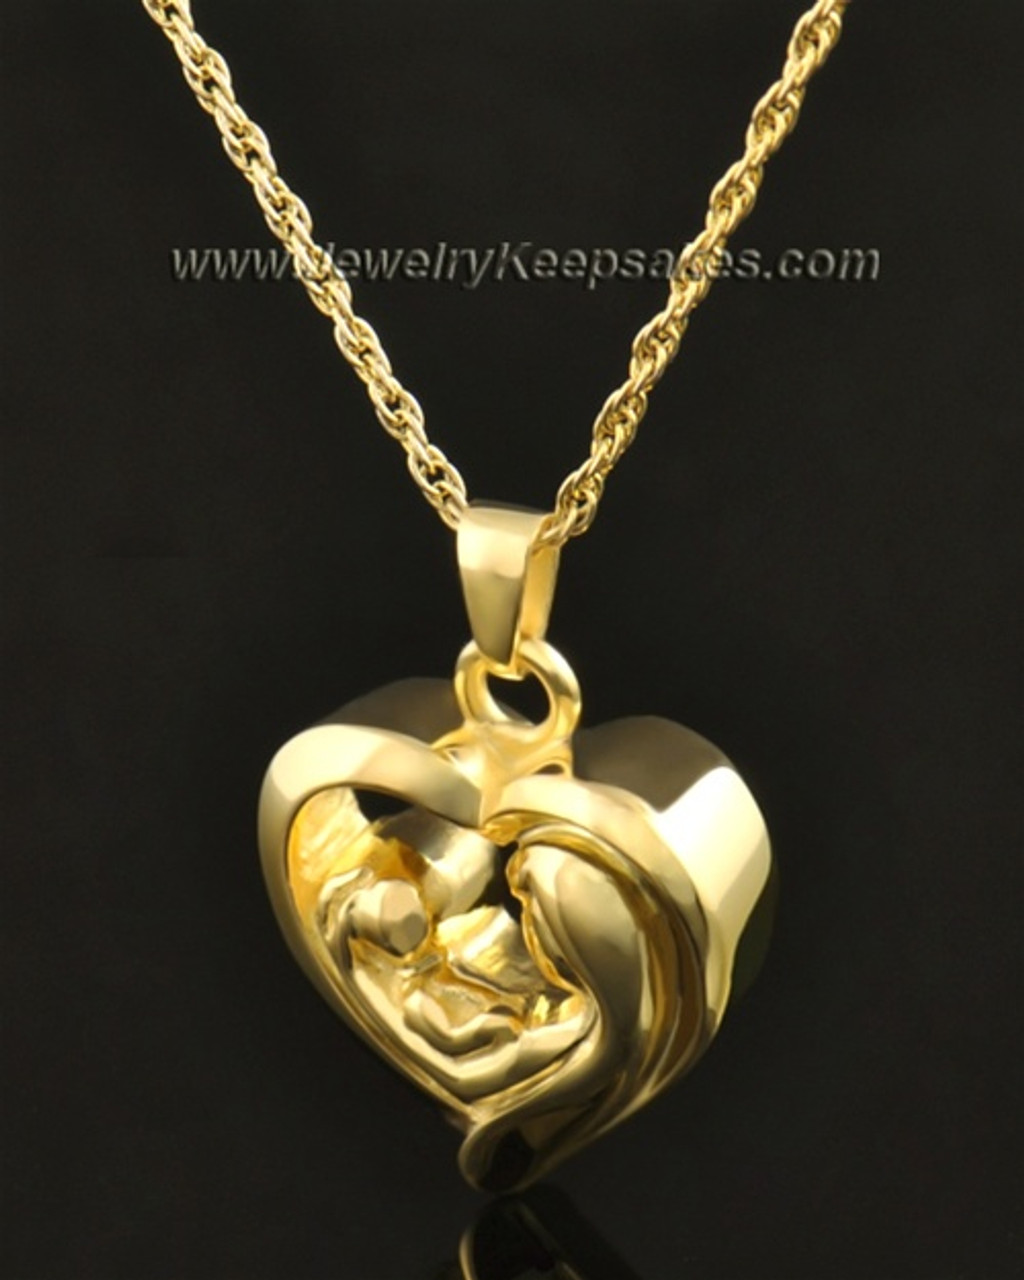 14 Gold Bond Of Love Locket Necklace And Heart Necklace Urns For Holding Close Cremated Ashes Of Loved One